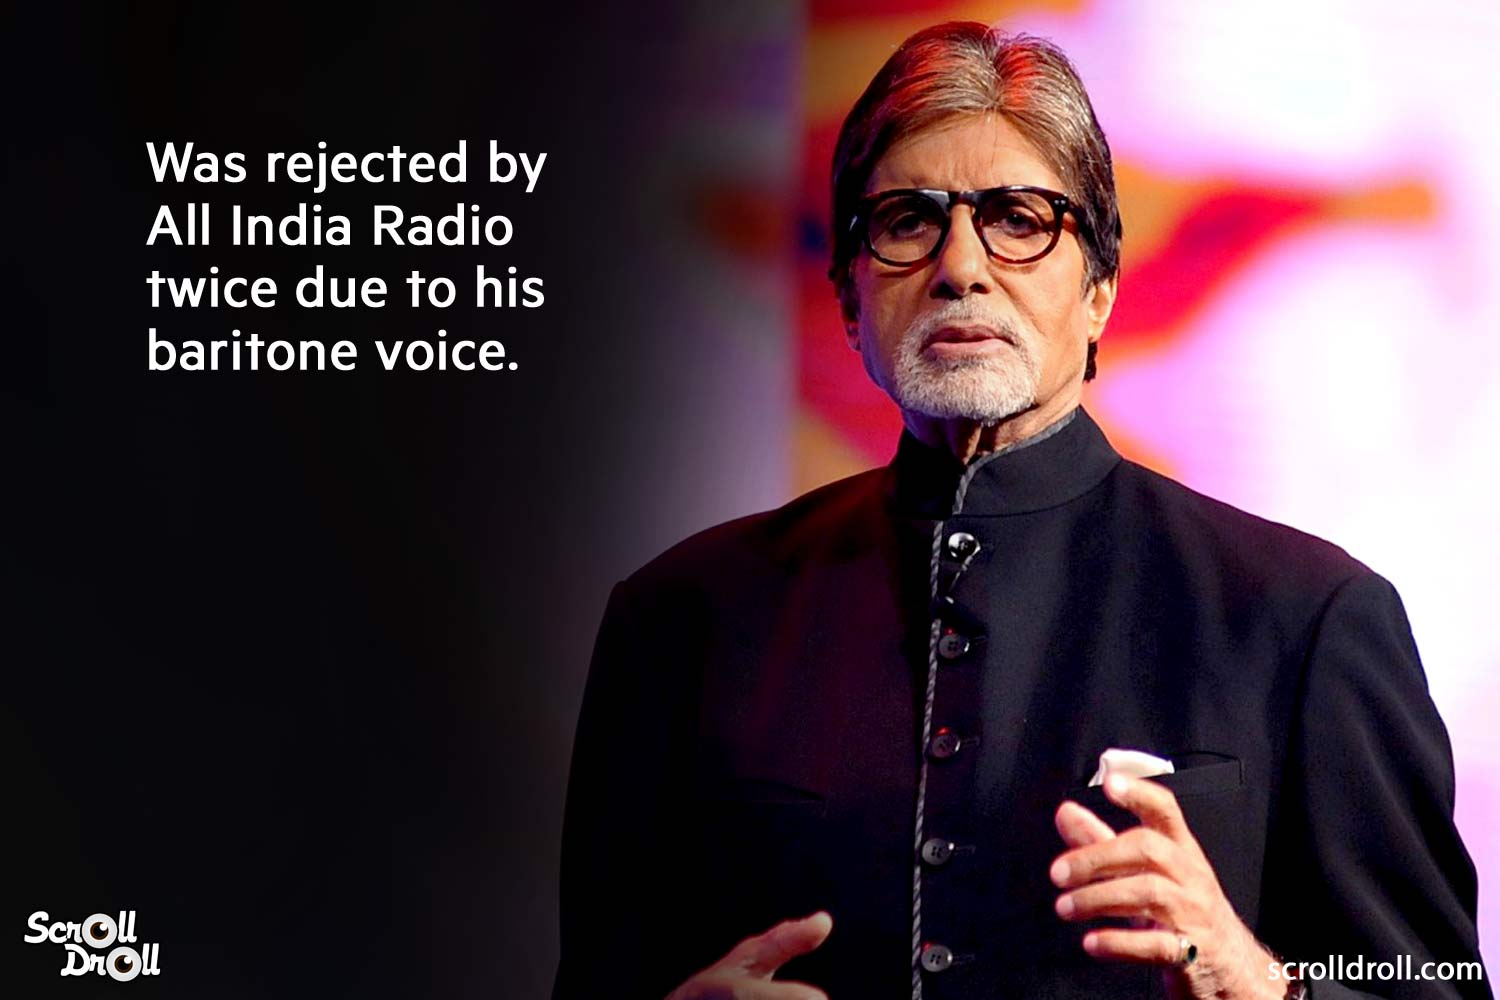 was rejected by all india radio twice due to his baritone voice-amitabh bachchan facts